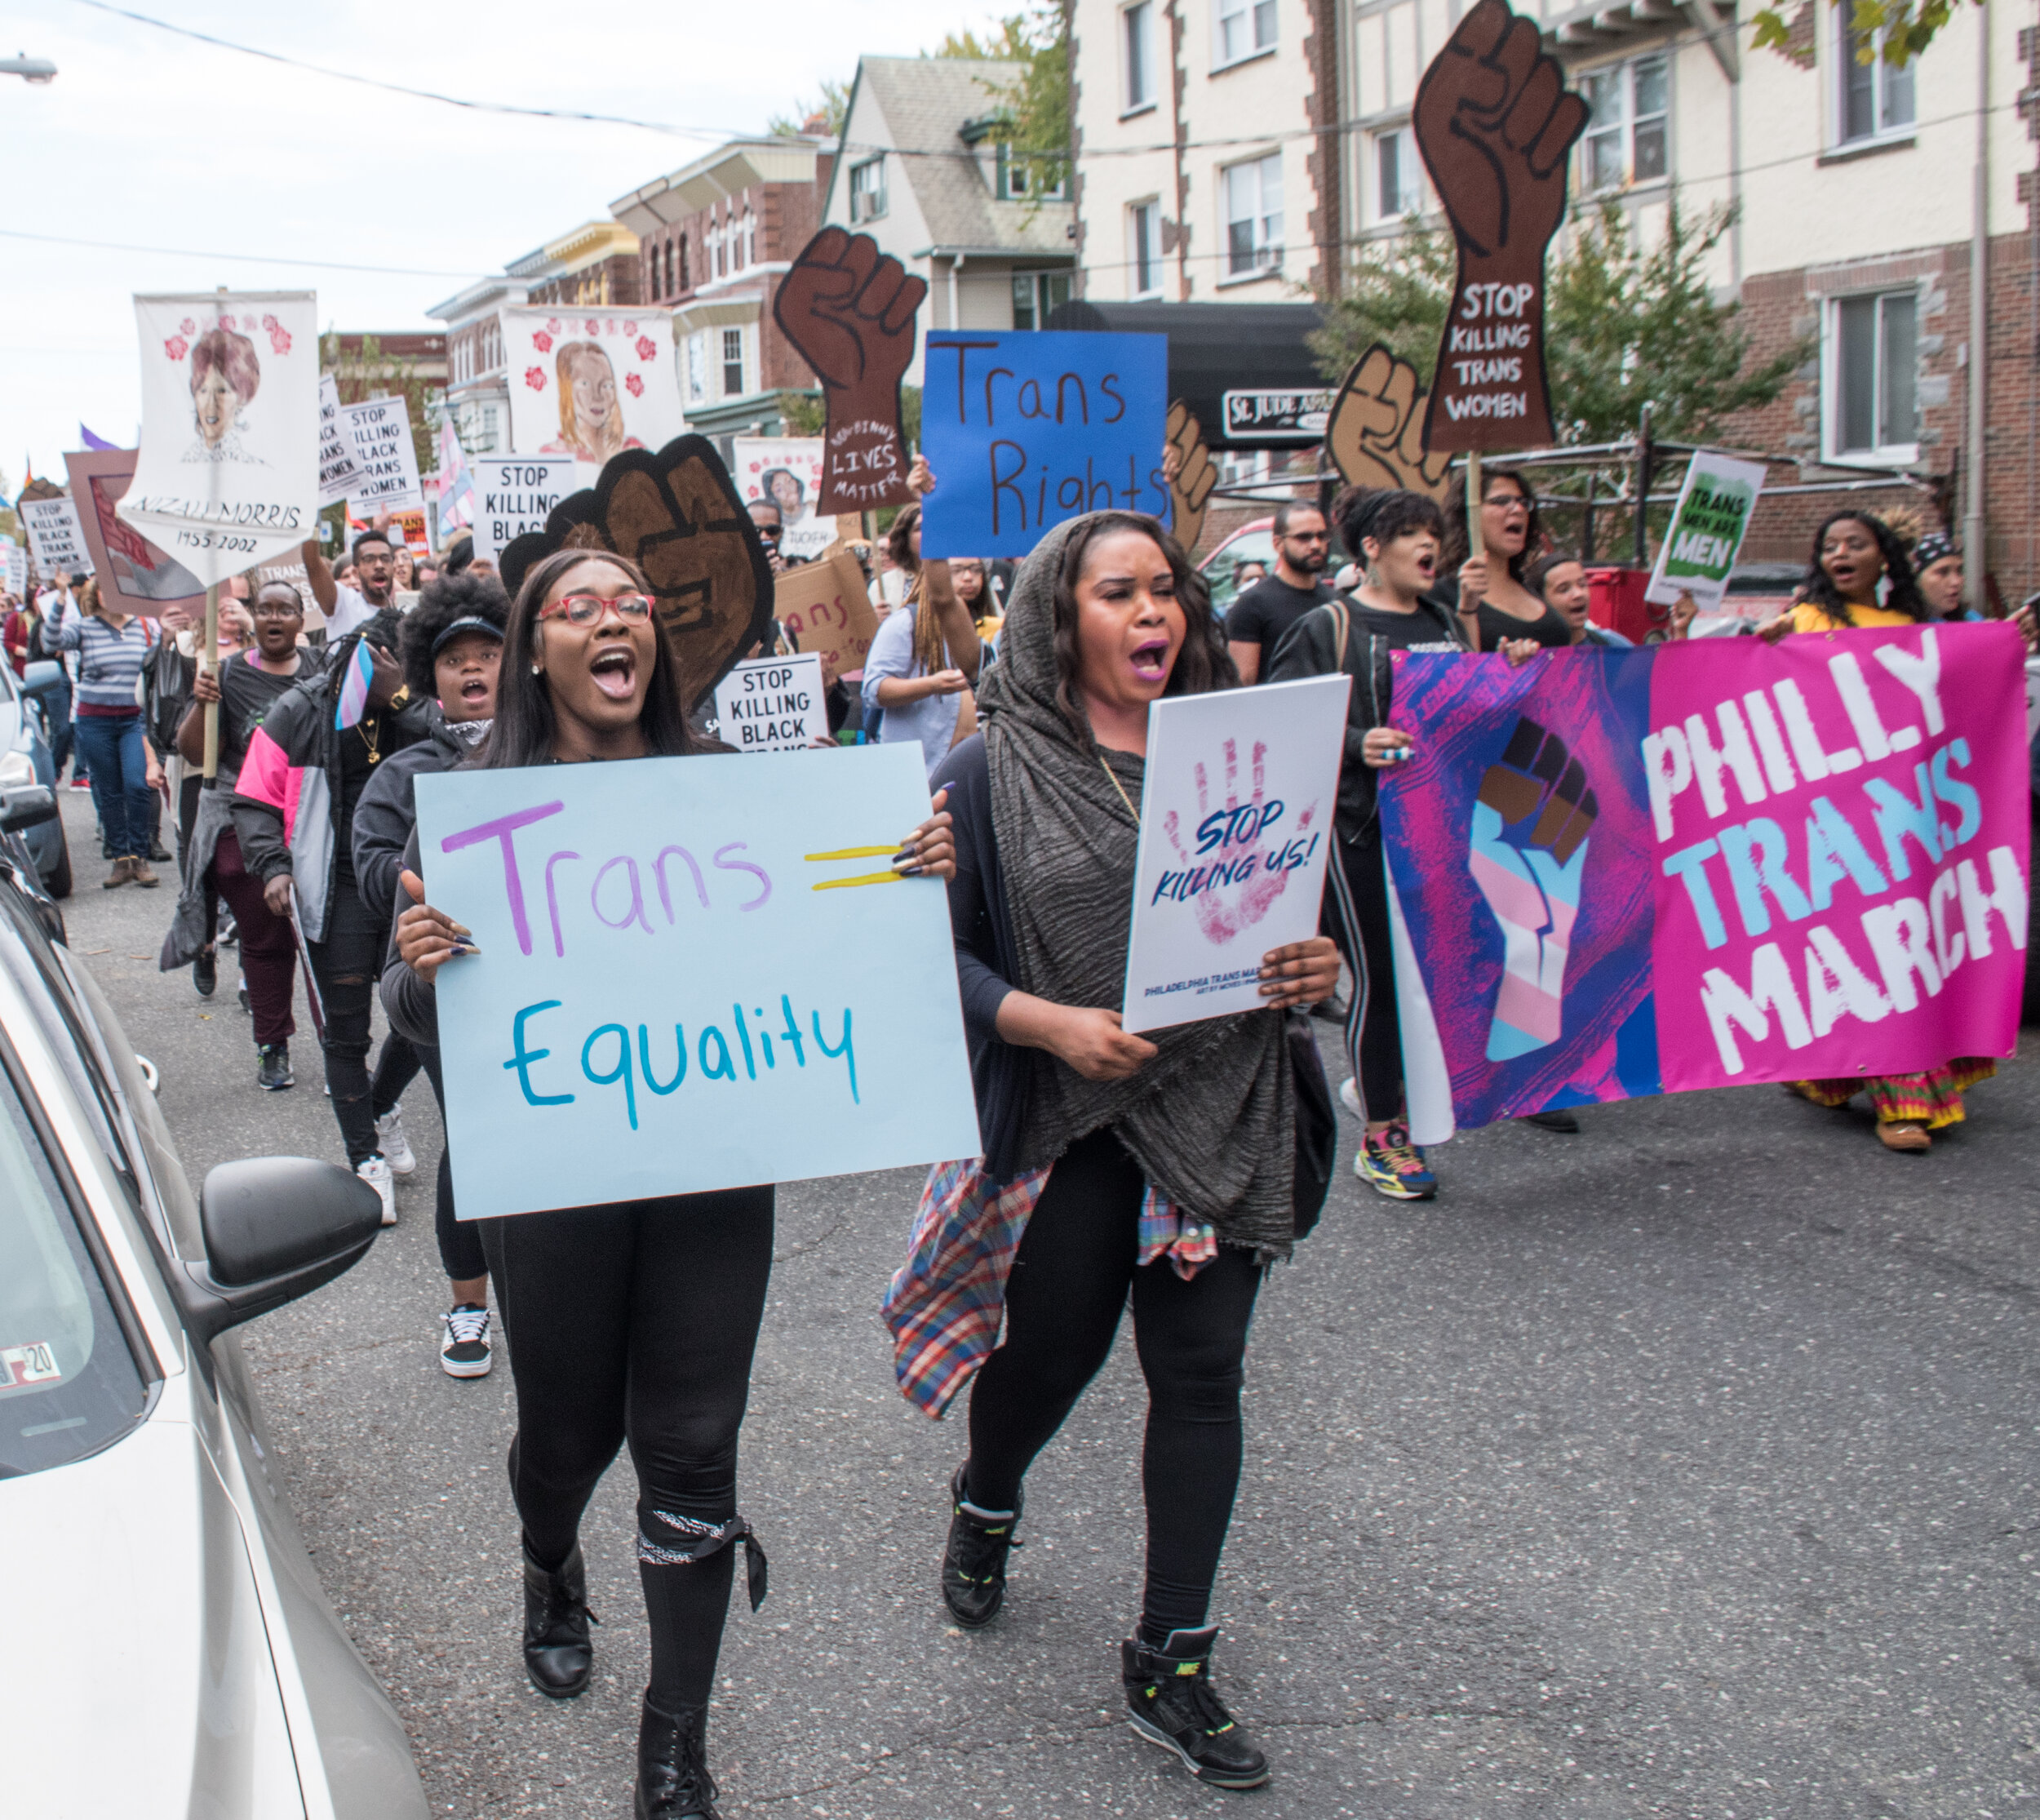 Oct 12, 2019 Philly Trans March